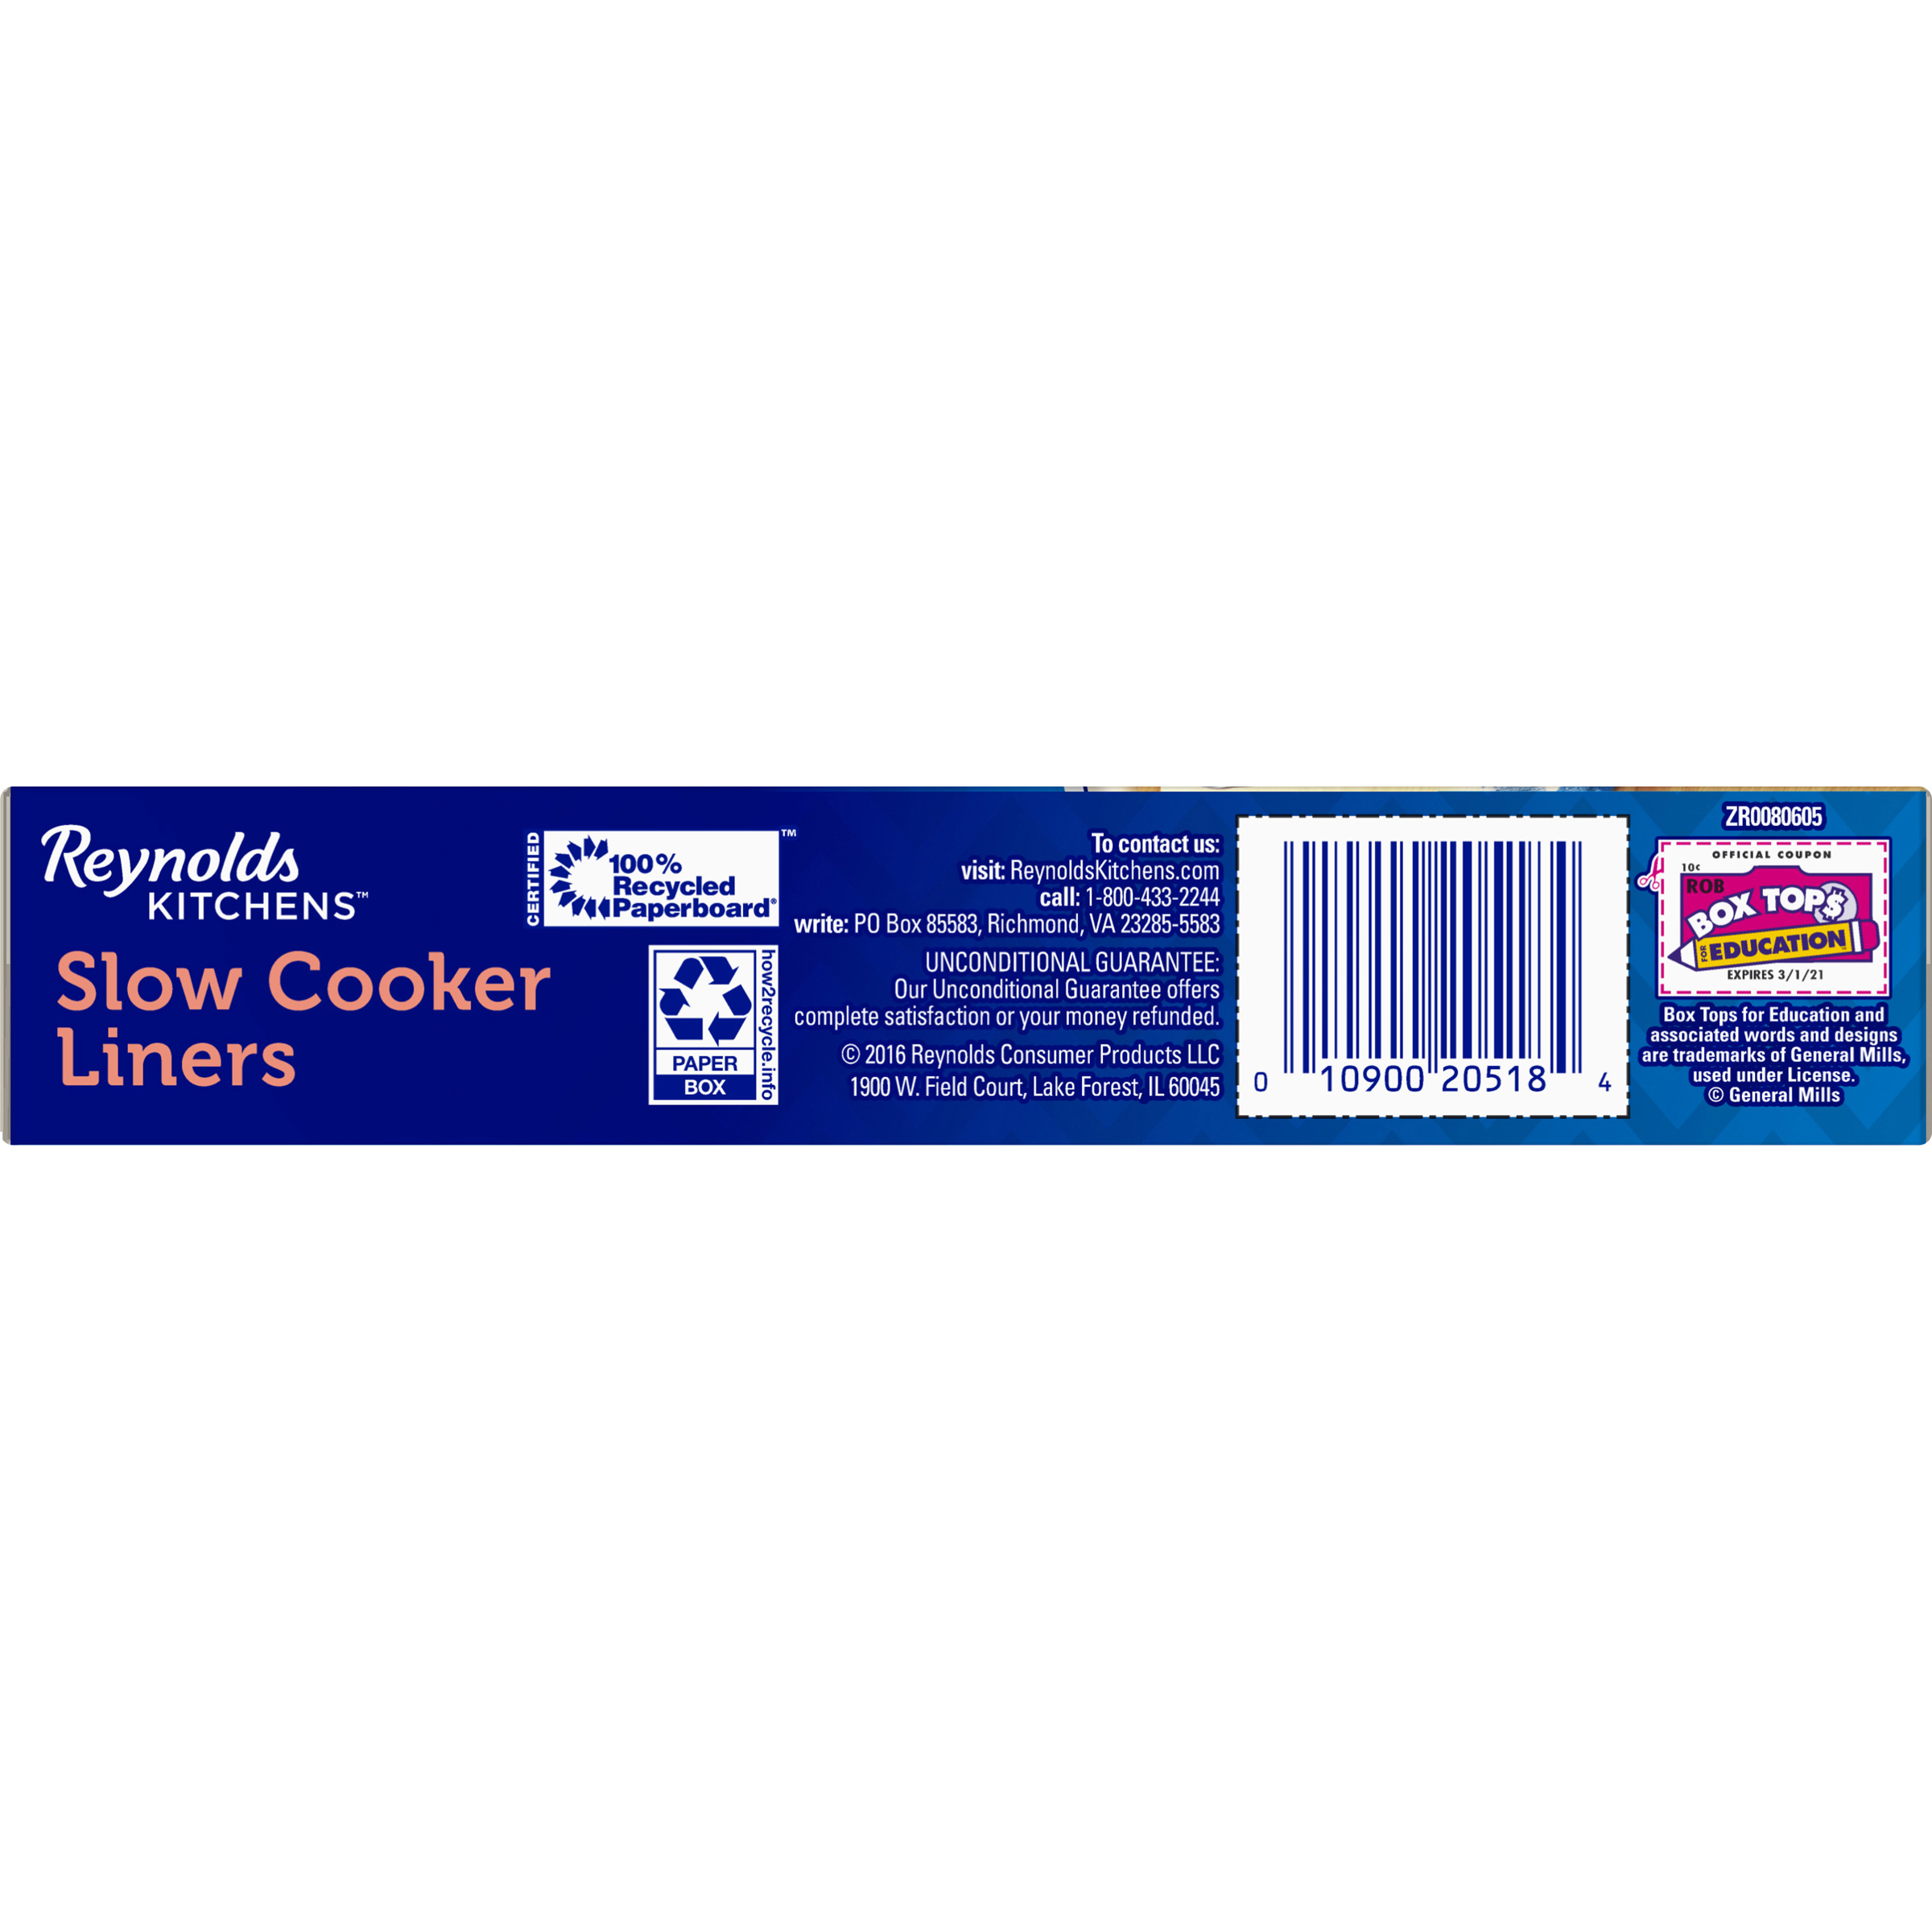 Reynolds Kitchens™ Slow Cooker Liners 8 ct Box - Walmart.com